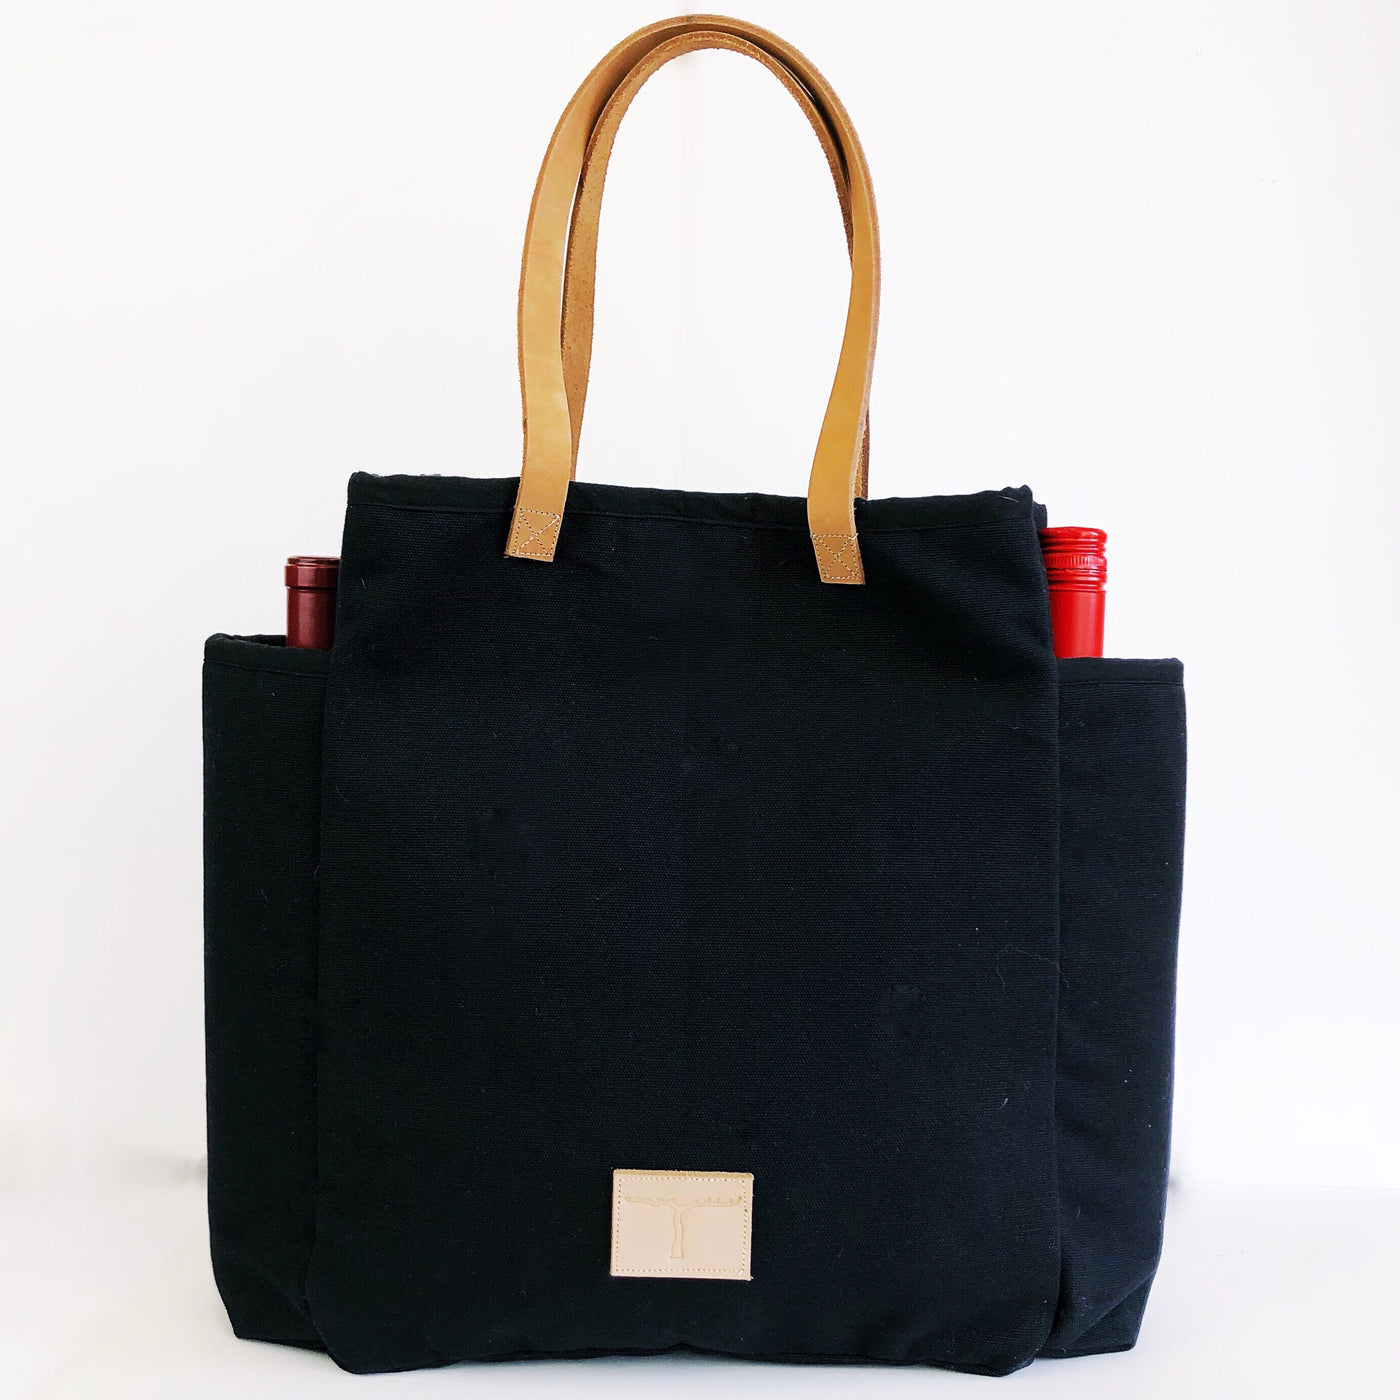 Two Bottle Market Tote Bag - Olive and Poppy